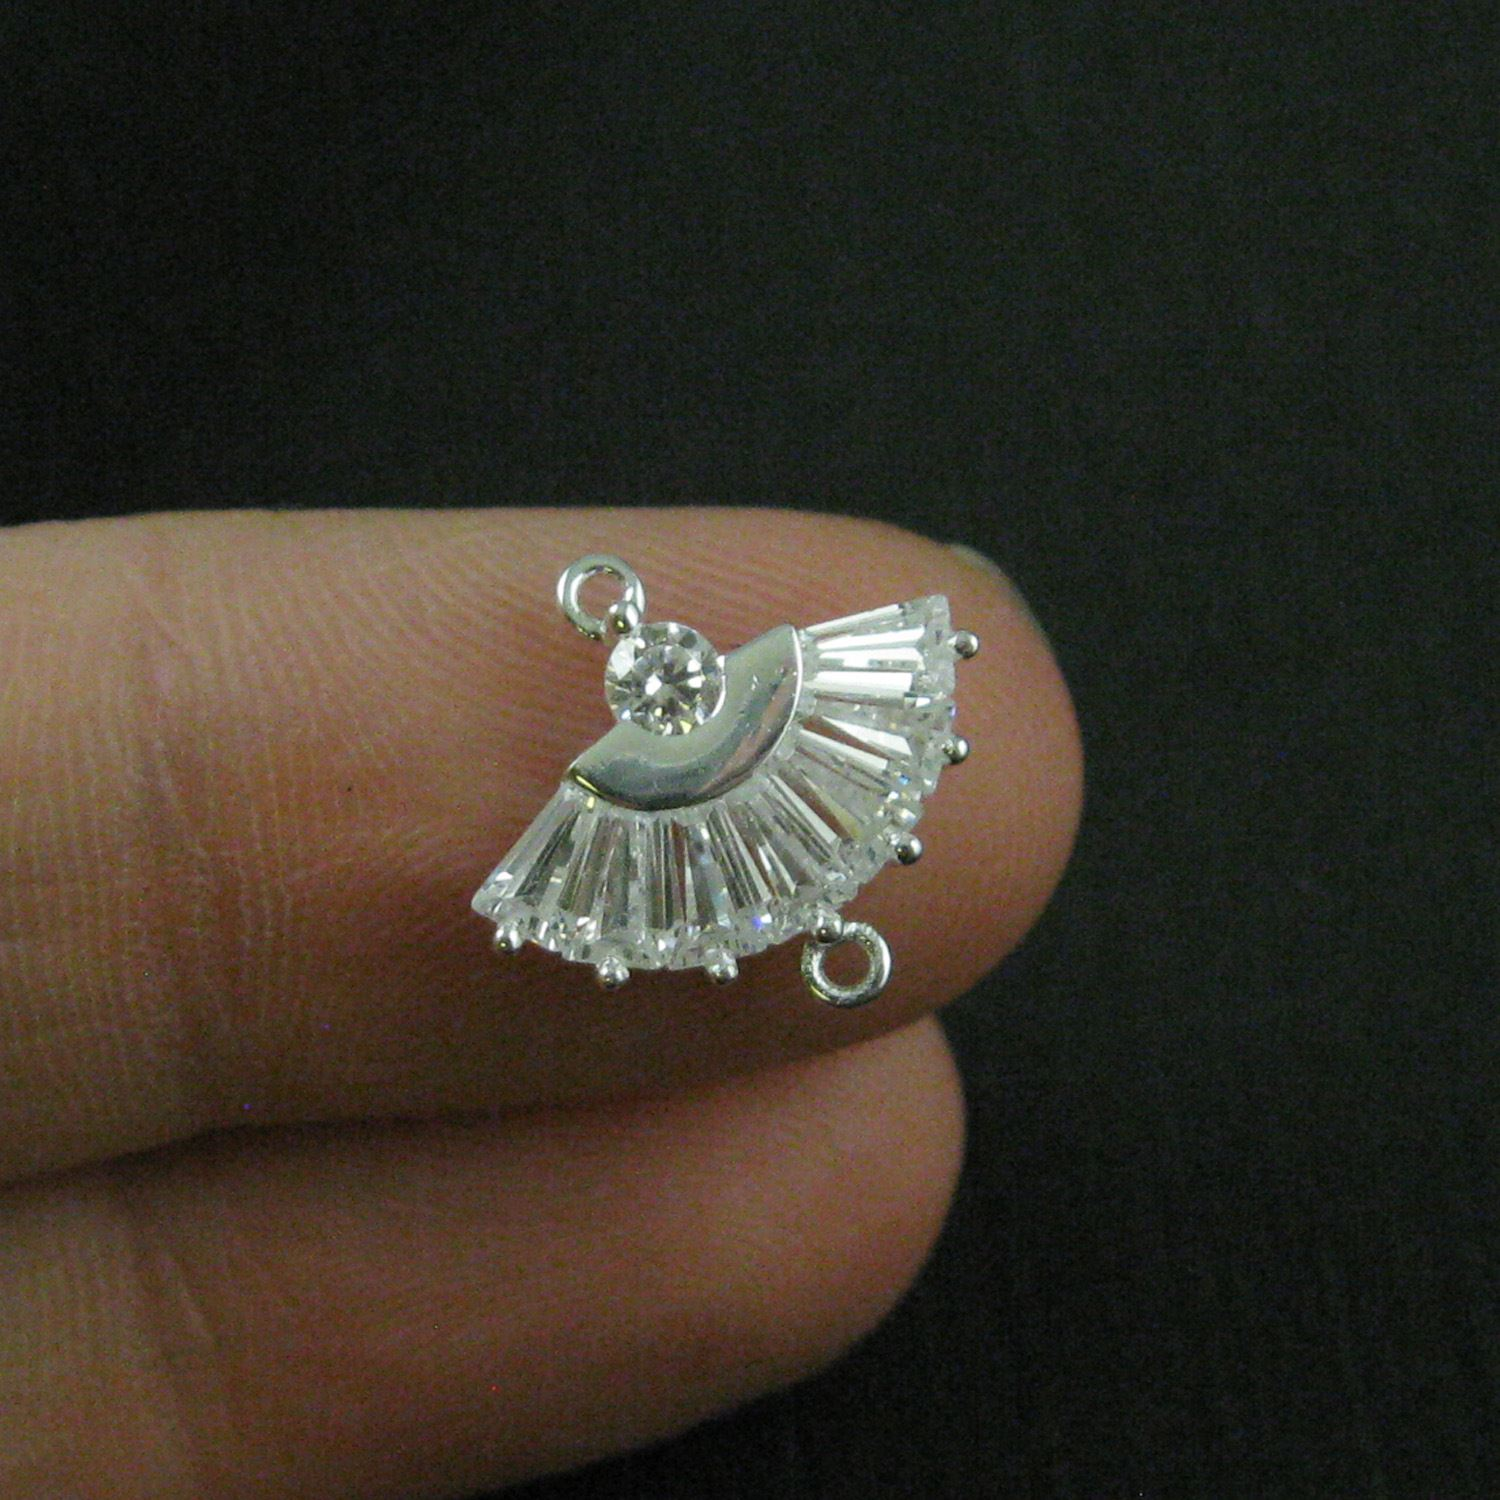 925 Sterling Silver Charm-CZ Cubic Zirconia Oriental Hand Fan Connector- Silver Connector Link- 13mm ( 1 pc)